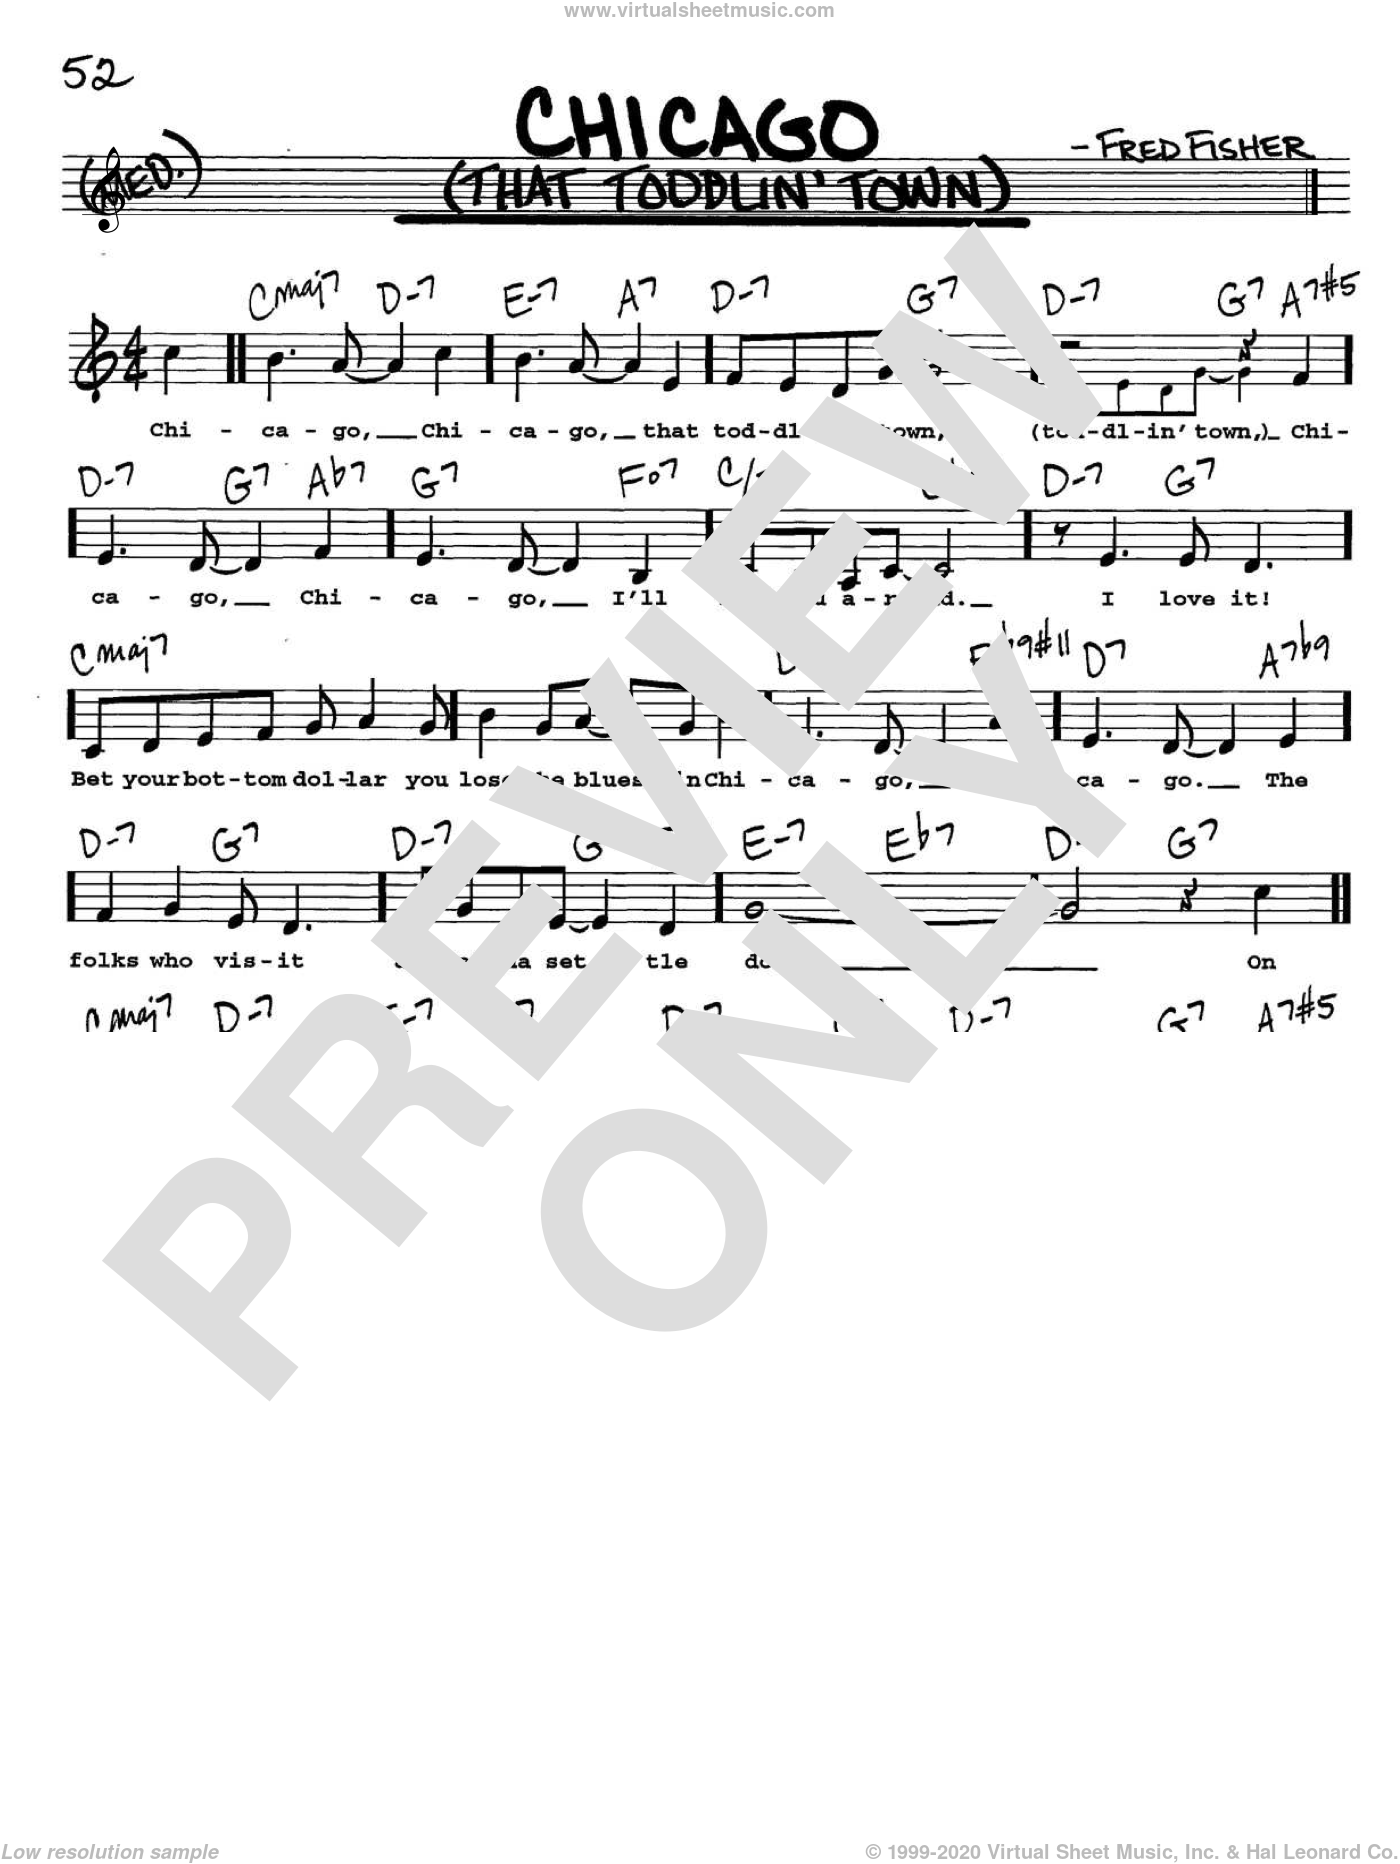 Chicago (That Toddlin' Town) sheet music for voice and other instruments (Vocal Volume 2) by Fred Fisher and Frank Sinatra. Score Image Preview.